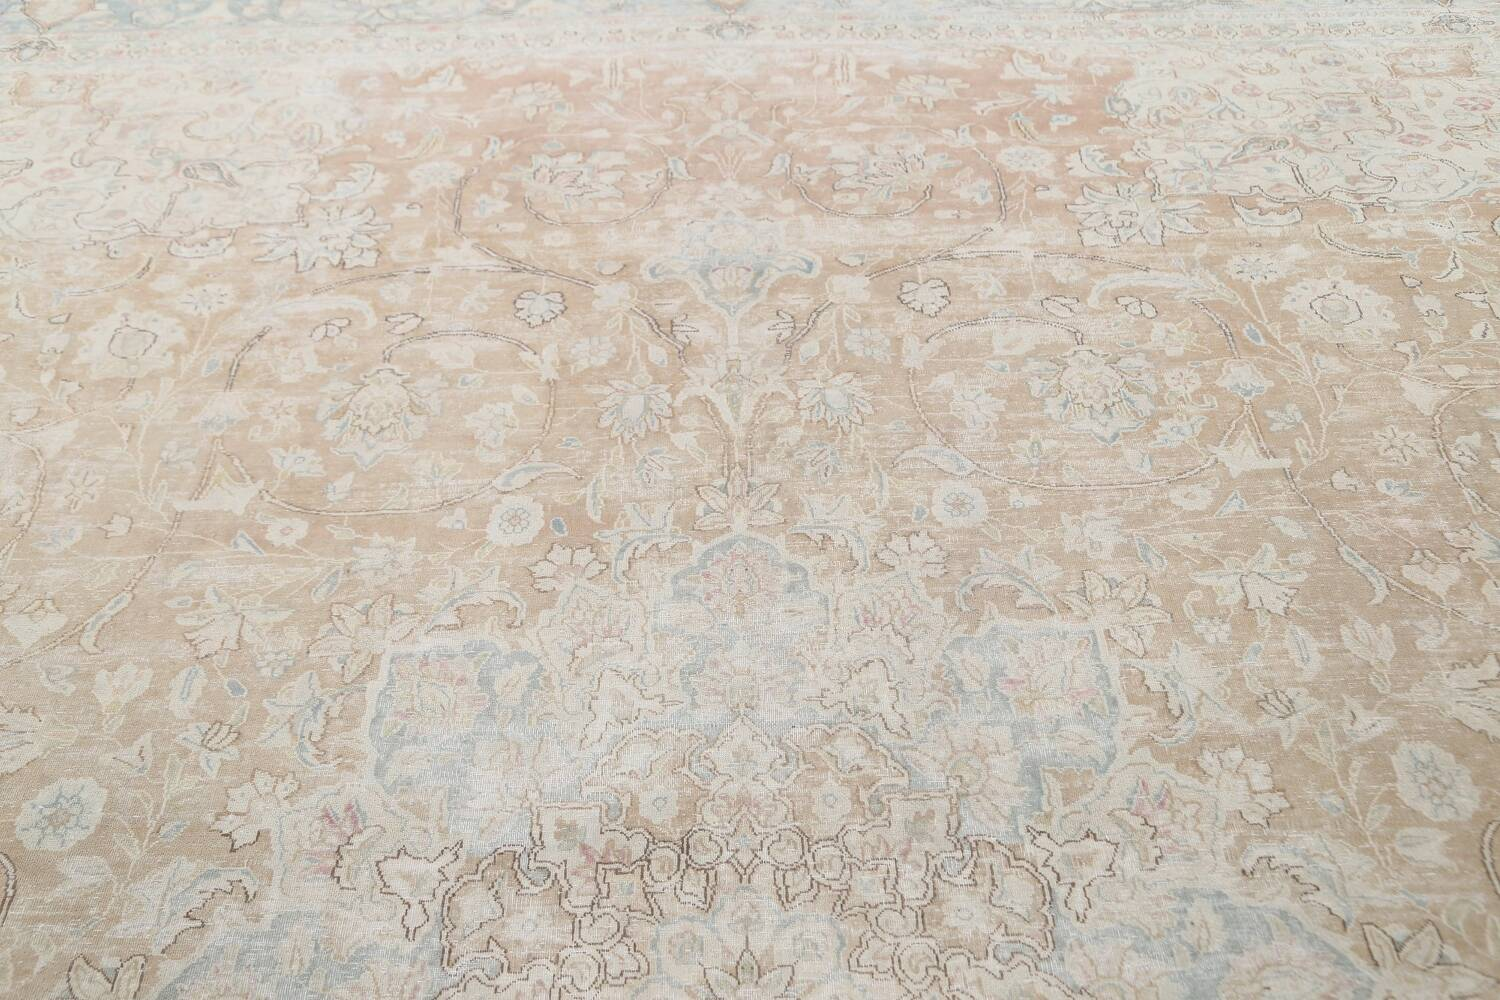 Muted Floral Kerman Persian Area Rug 10x13 image 12